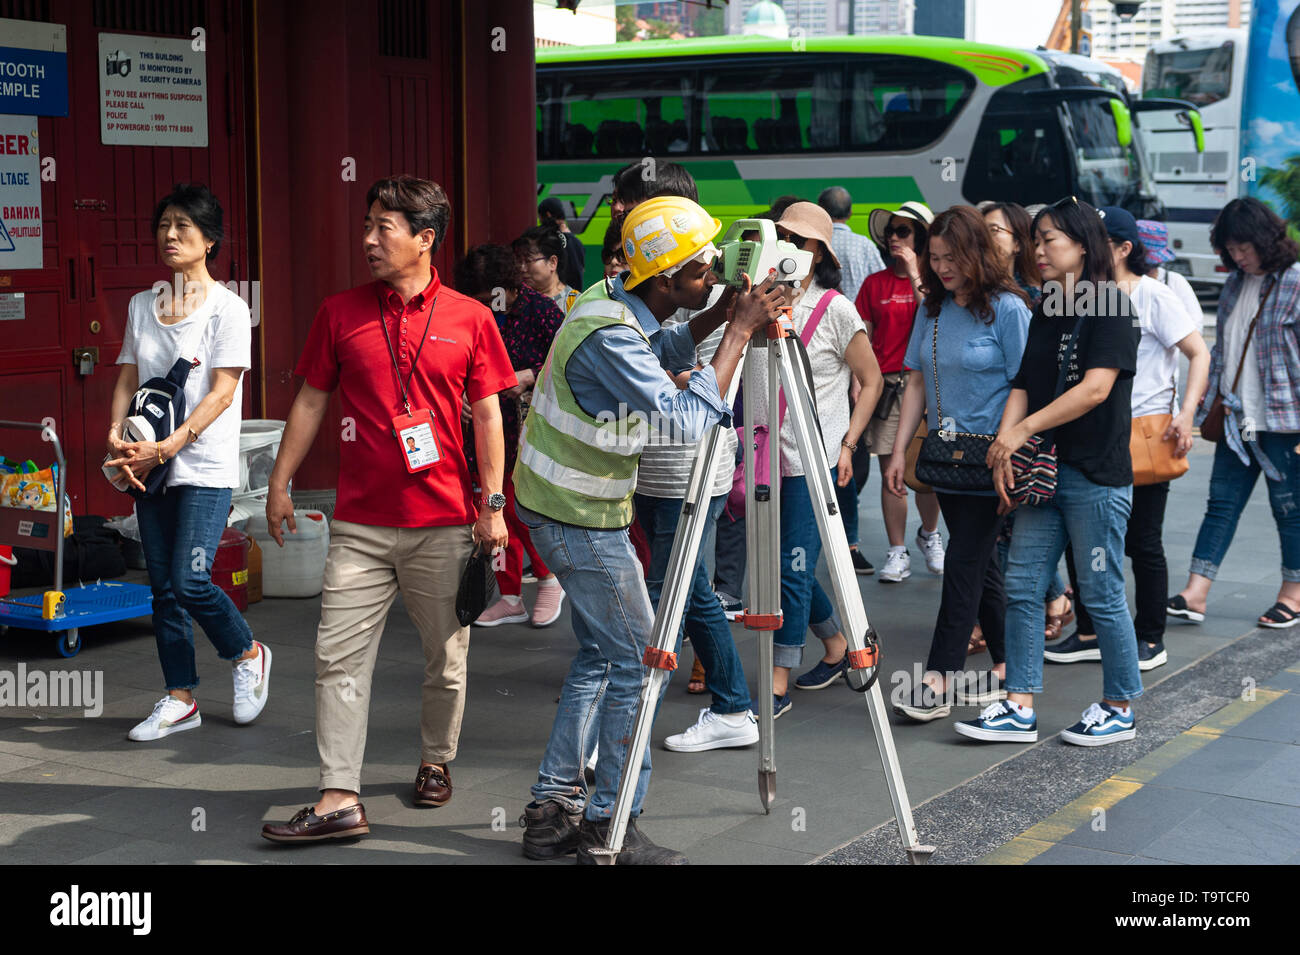 29.03.2019, Singapore, Republic of Singapore, Asia - A surveyor is taking readings from a theodolite as a group of tourists is passing by. Stock Photo